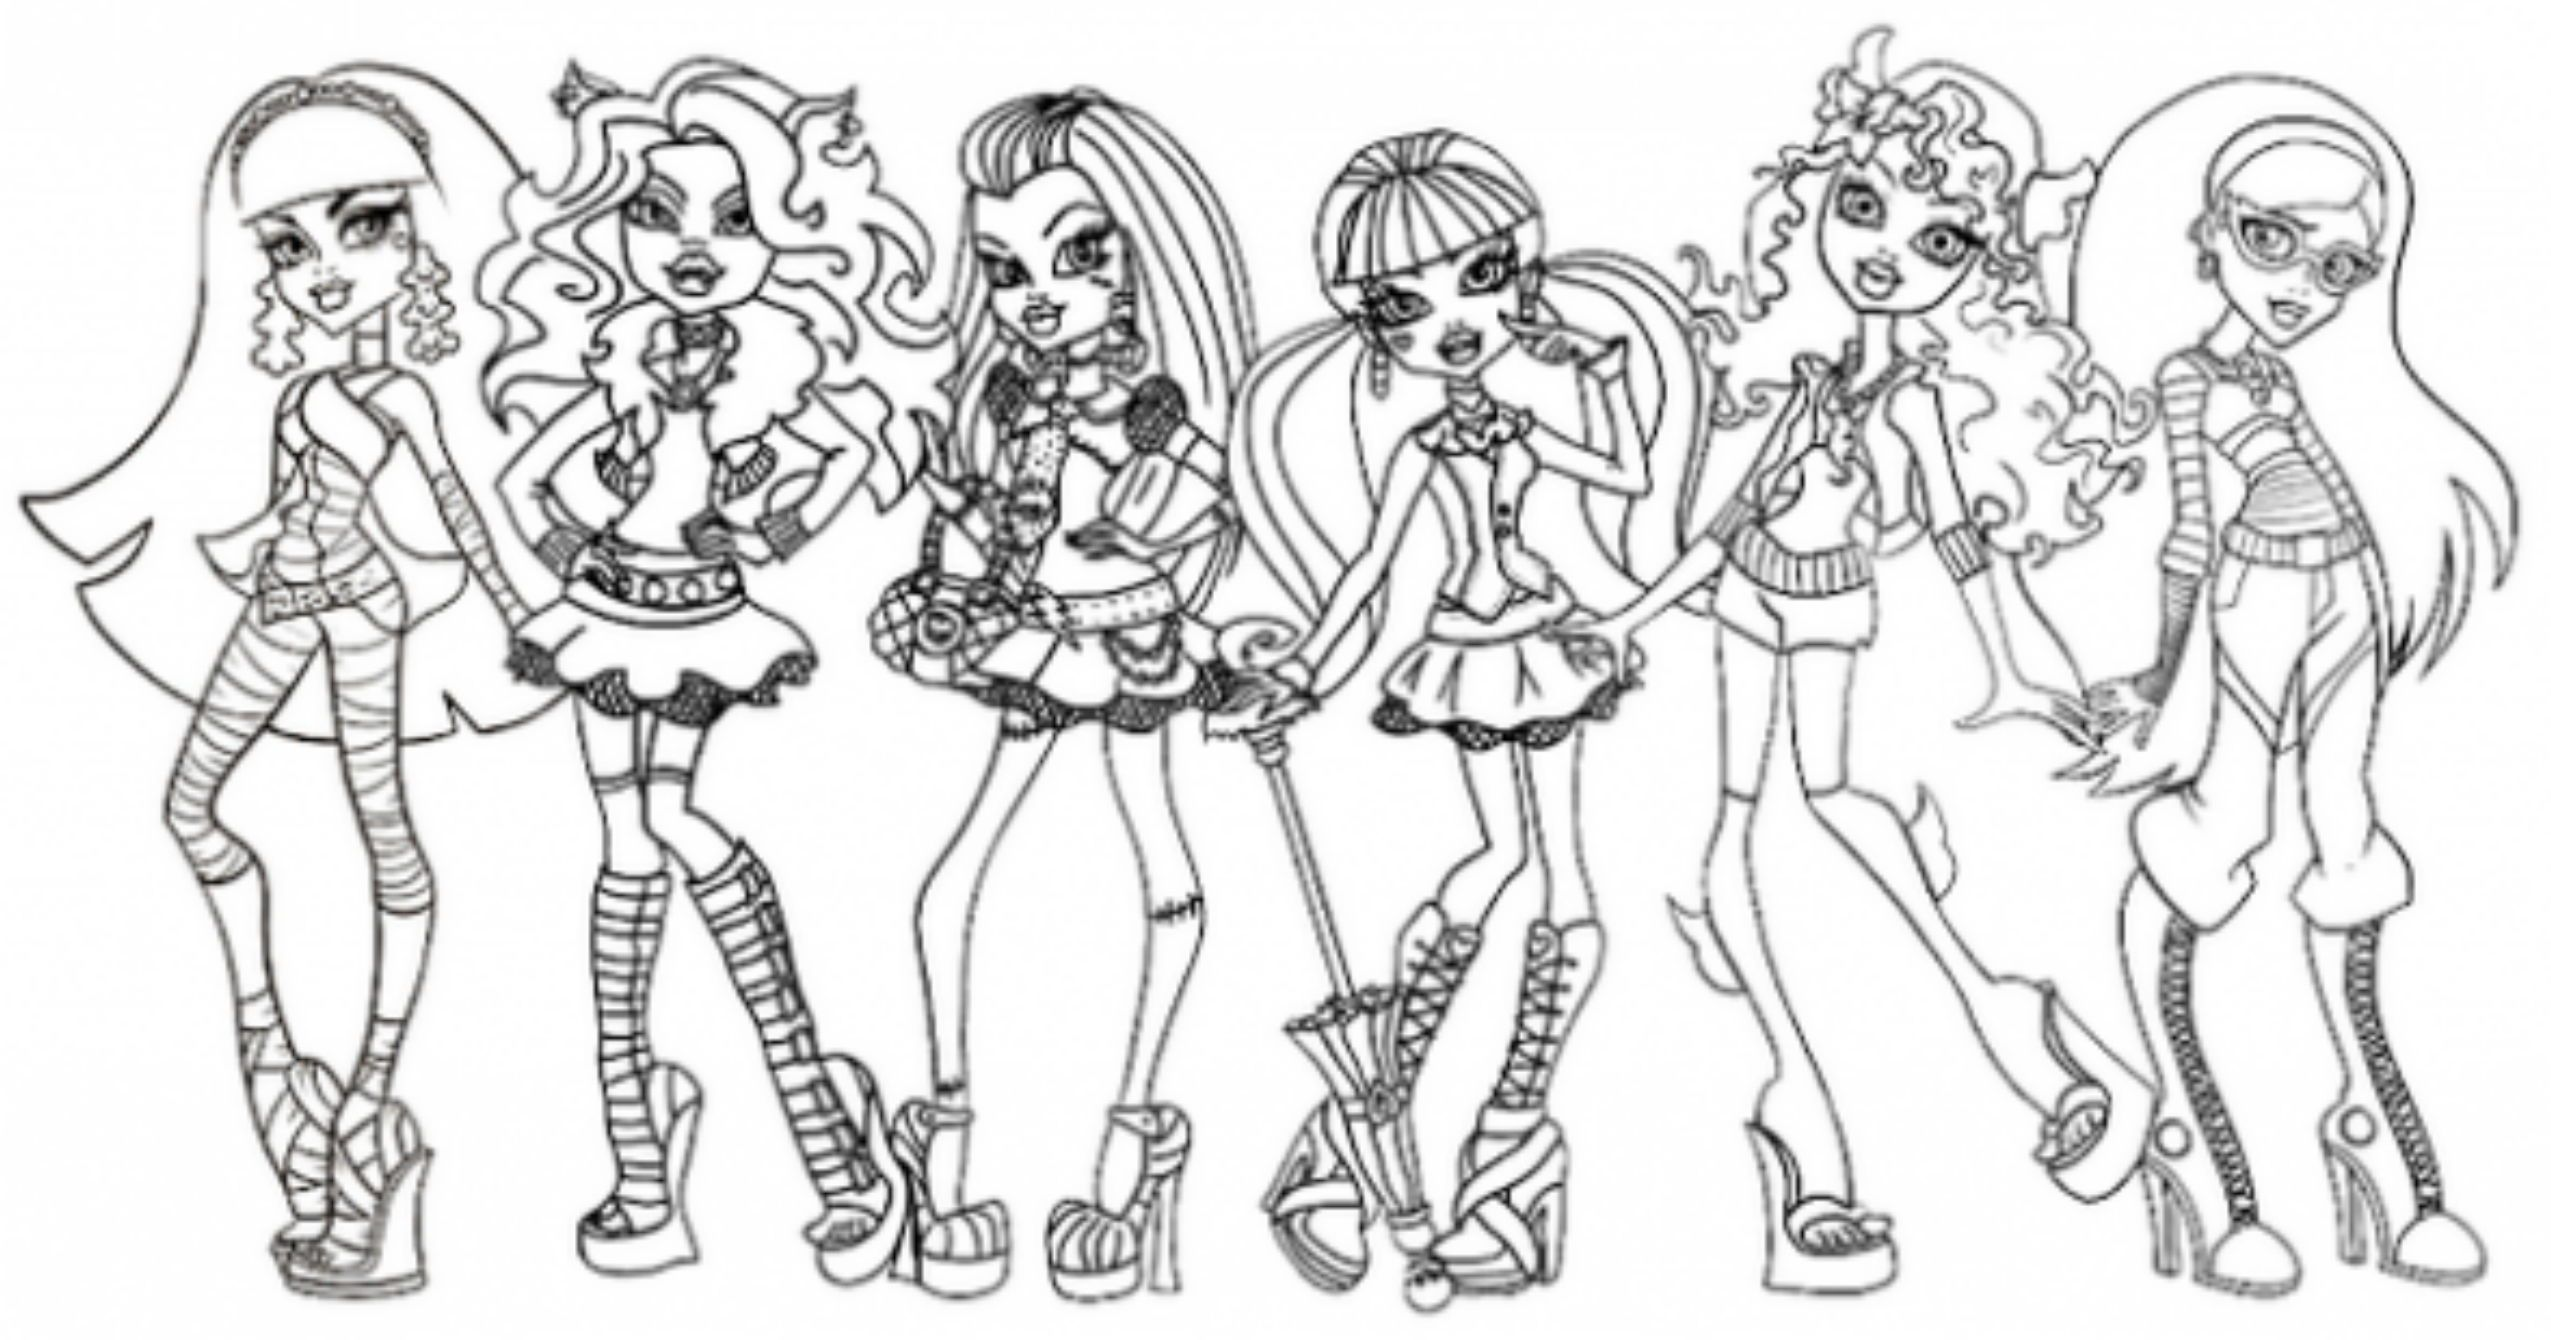 Coloring Pages Monster High Christmas Coloring Pages monster high christmas coloring pages az to print 19 pictures colorine net